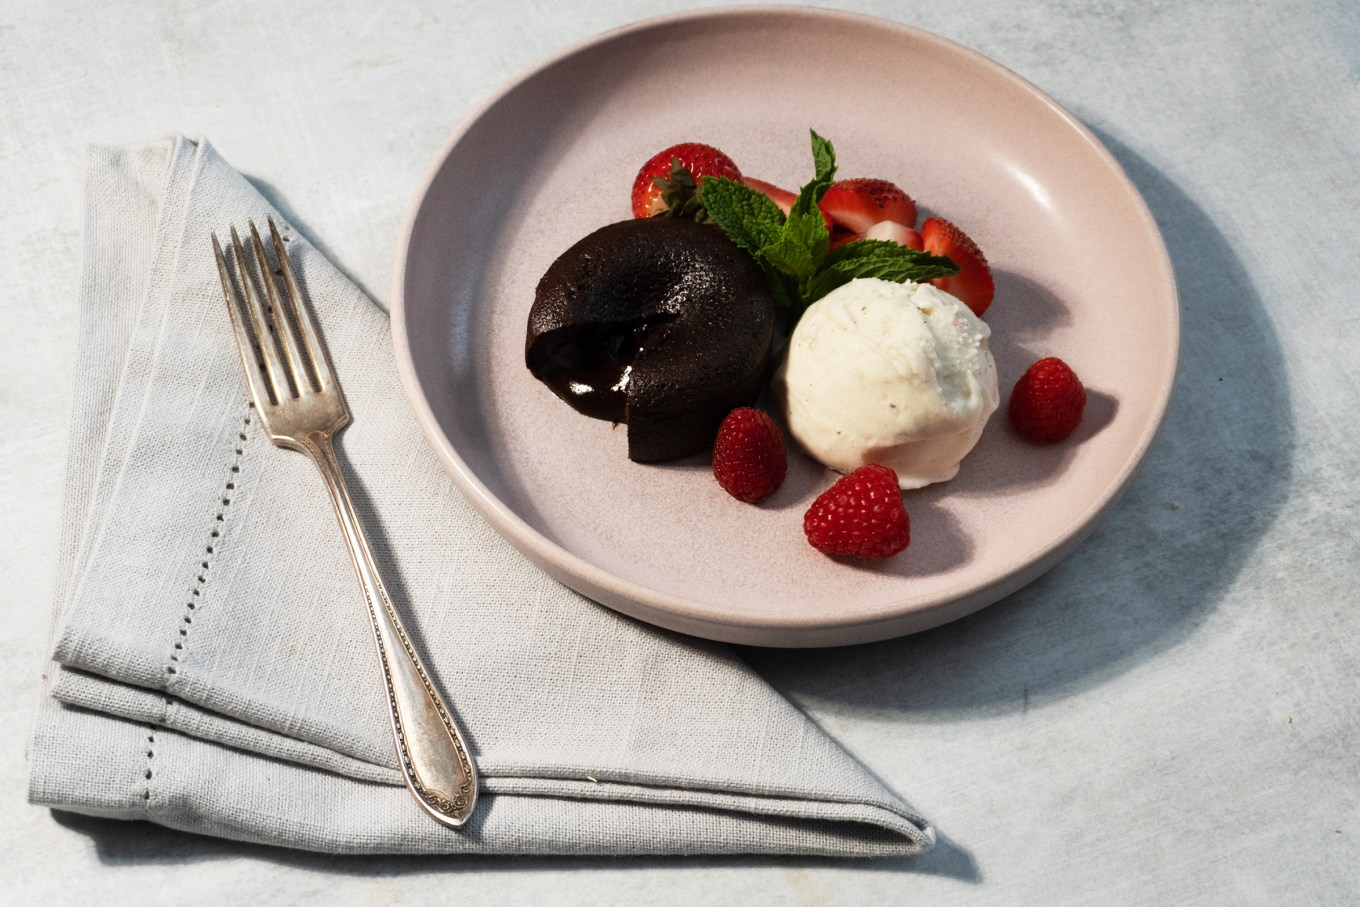 How to Bake Chocolate Lava Cakes in Suvie